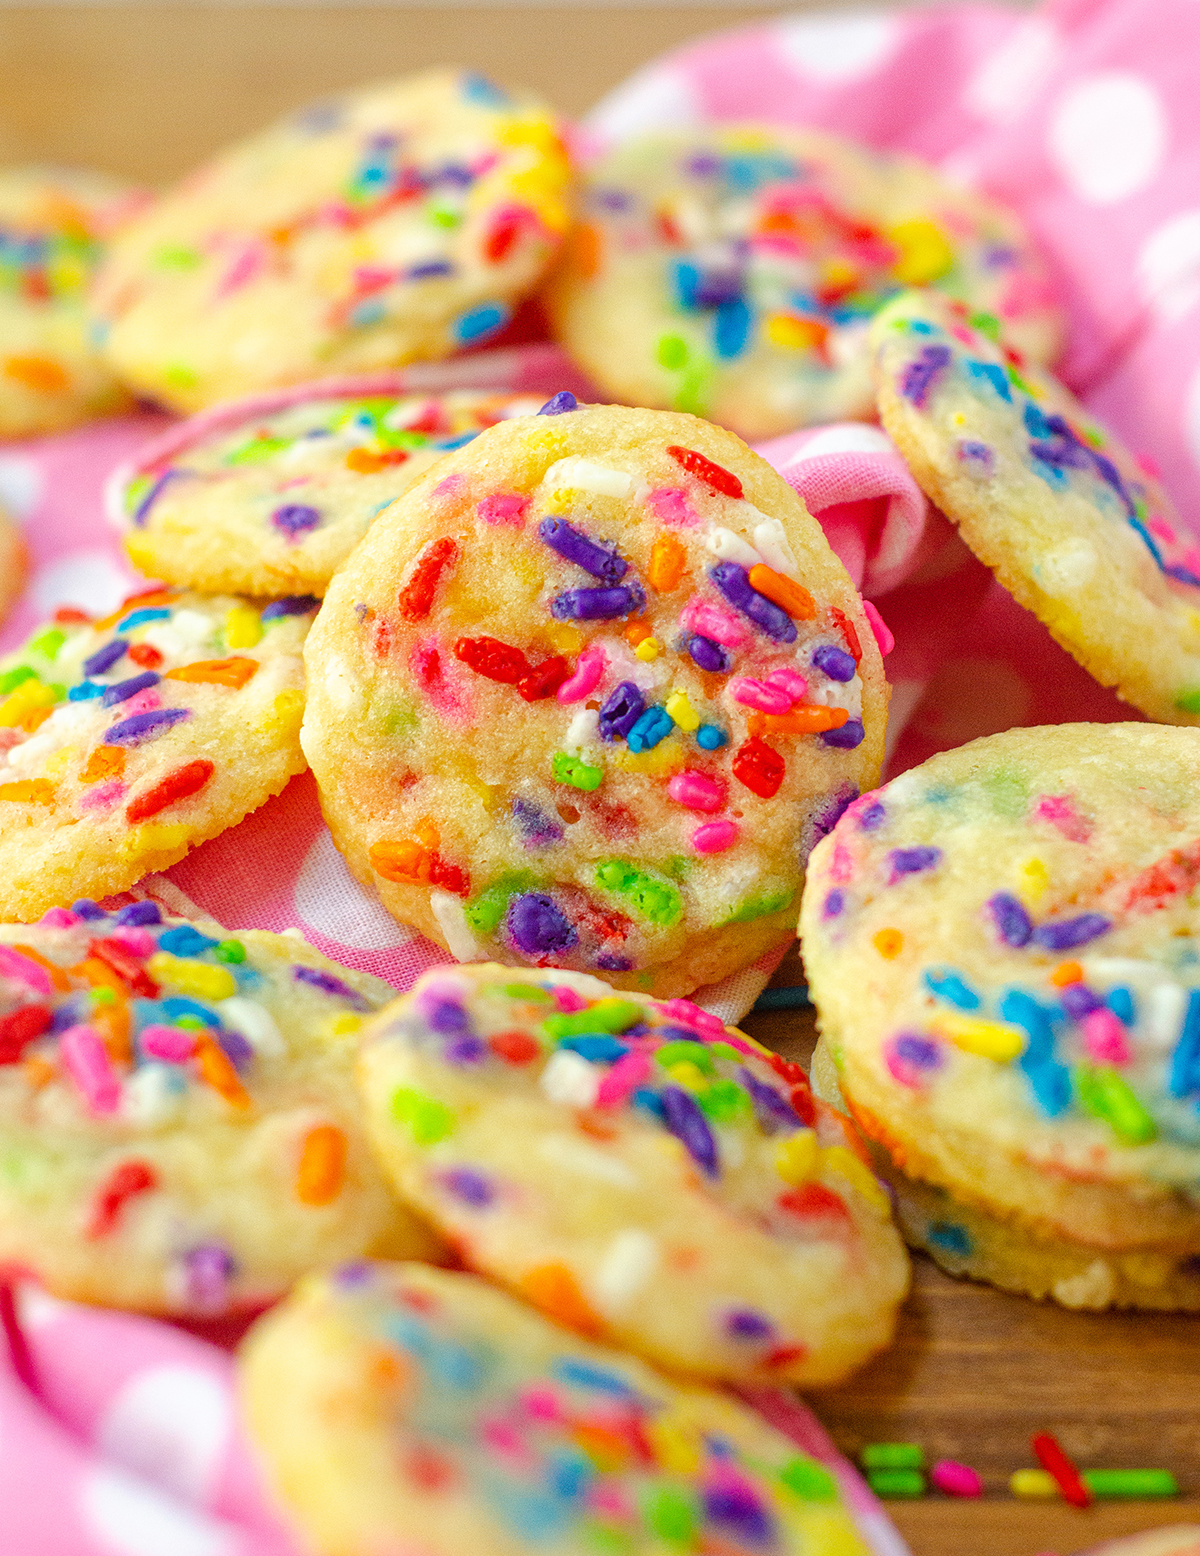 Soft and chewy sugar cookies filled with sprinkles. Keep them mini or make them standard size. Fill with your favorite holiday sprinkles!